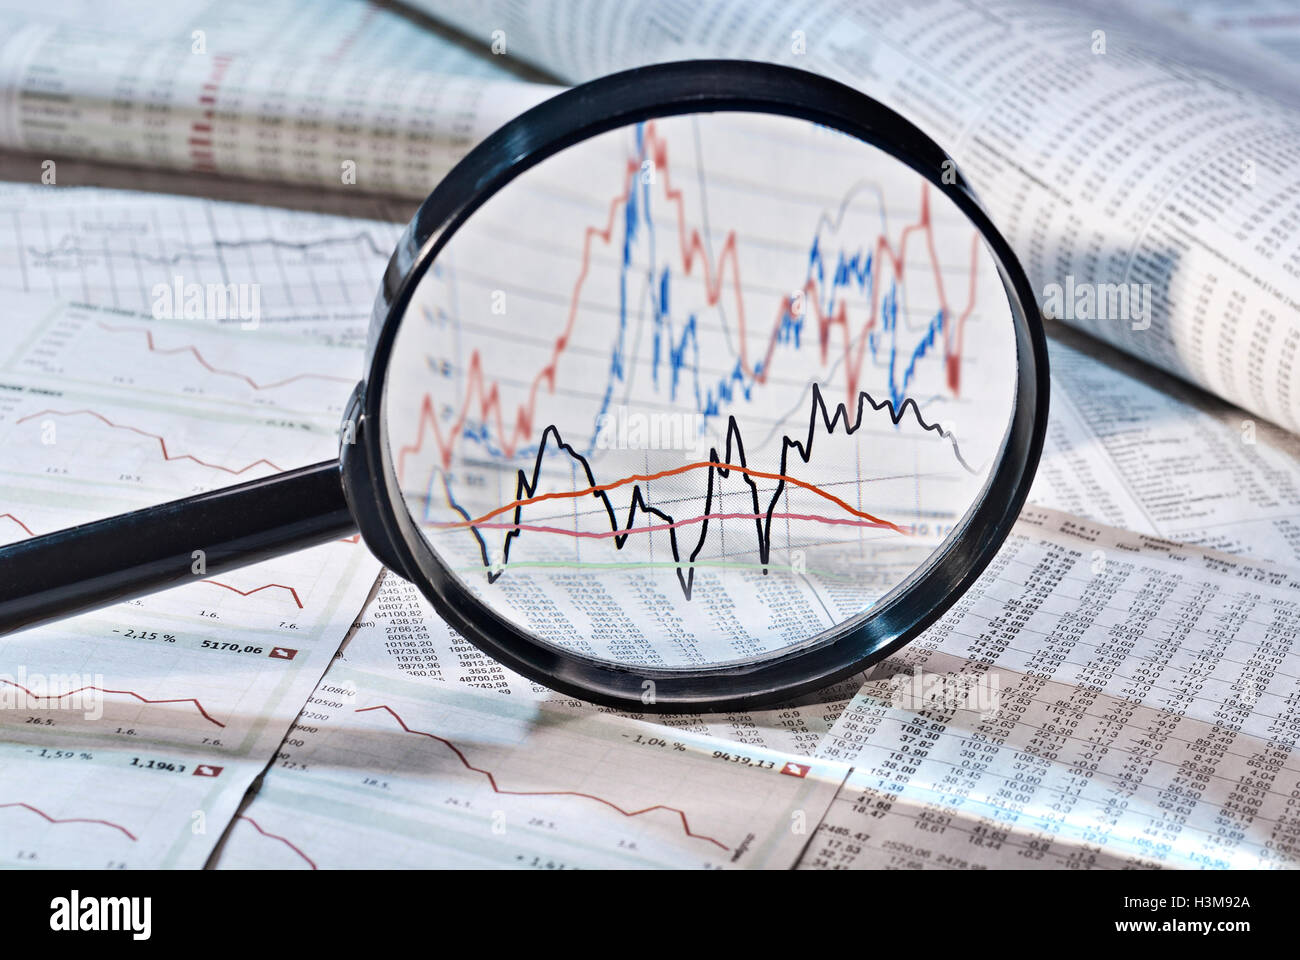 Magnifier shows the variation of stock prices, - Stock Image